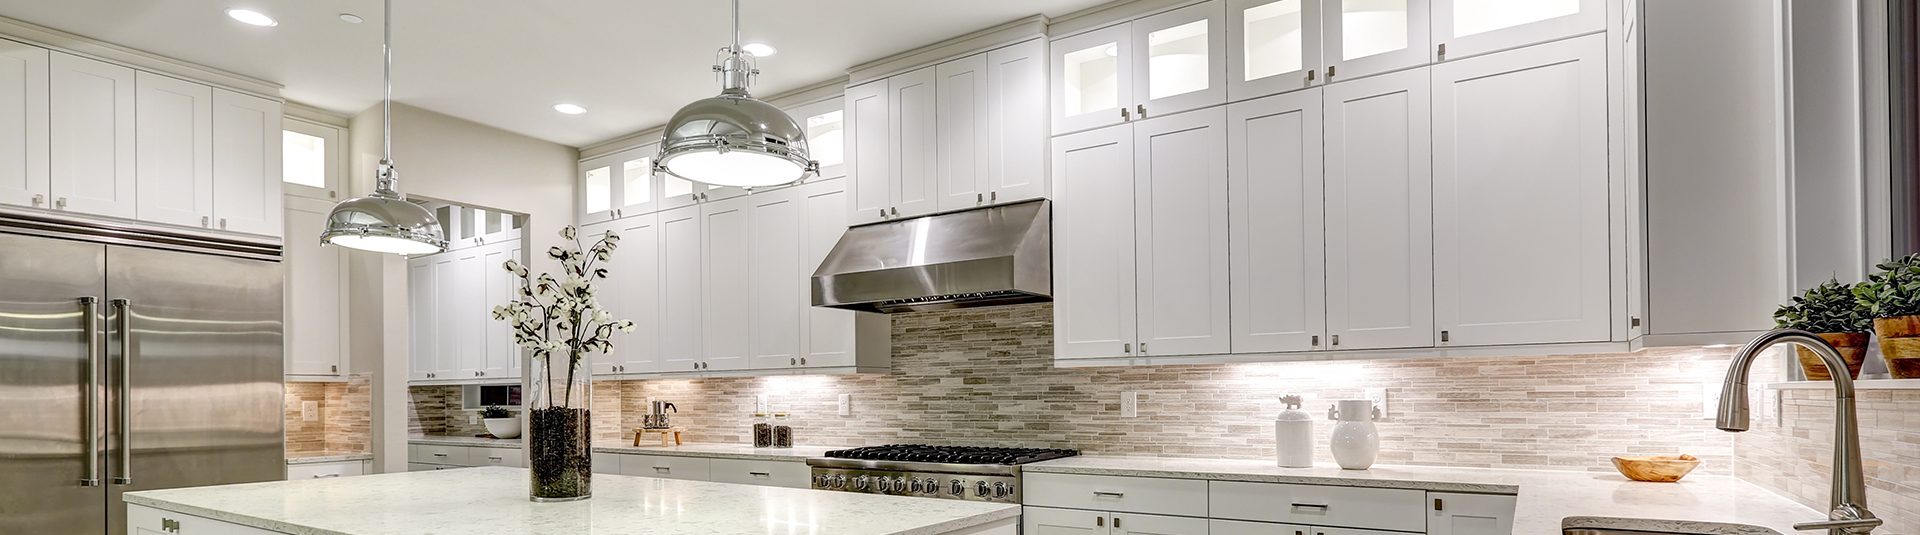 White kitchen cabinets with stainless steel appliances in beautiful, clean kitchen